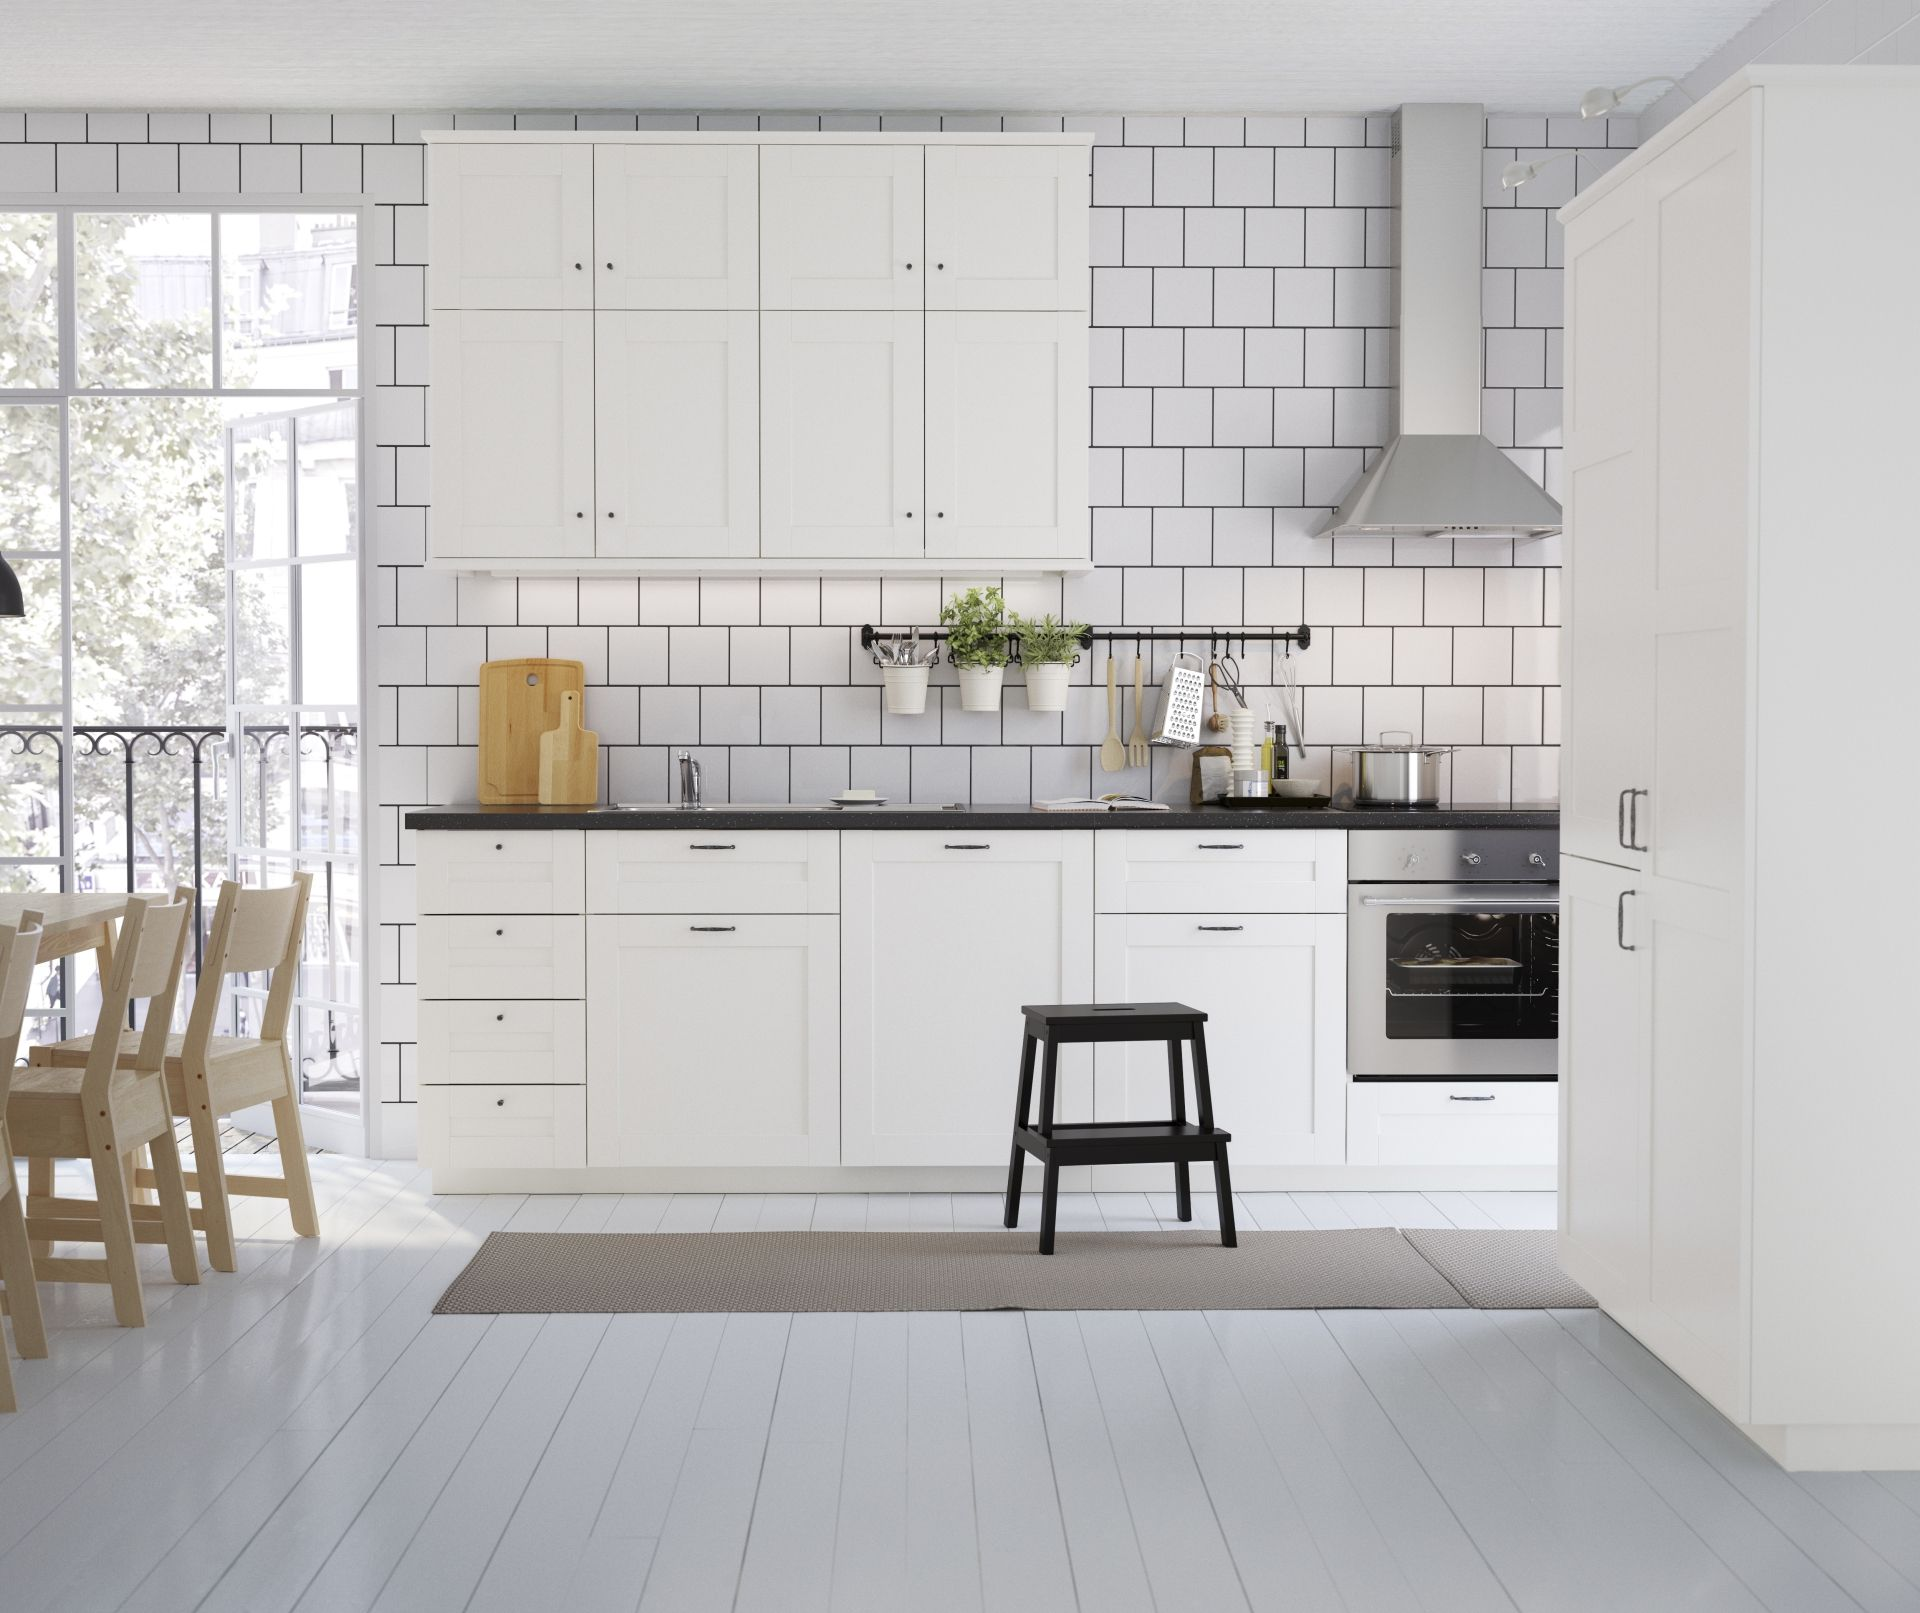 metod s vedal keuken ikea ikeanl ikeanederland wit traditioneel landelijk opbergen opberger. Black Bedroom Furniture Sets. Home Design Ideas